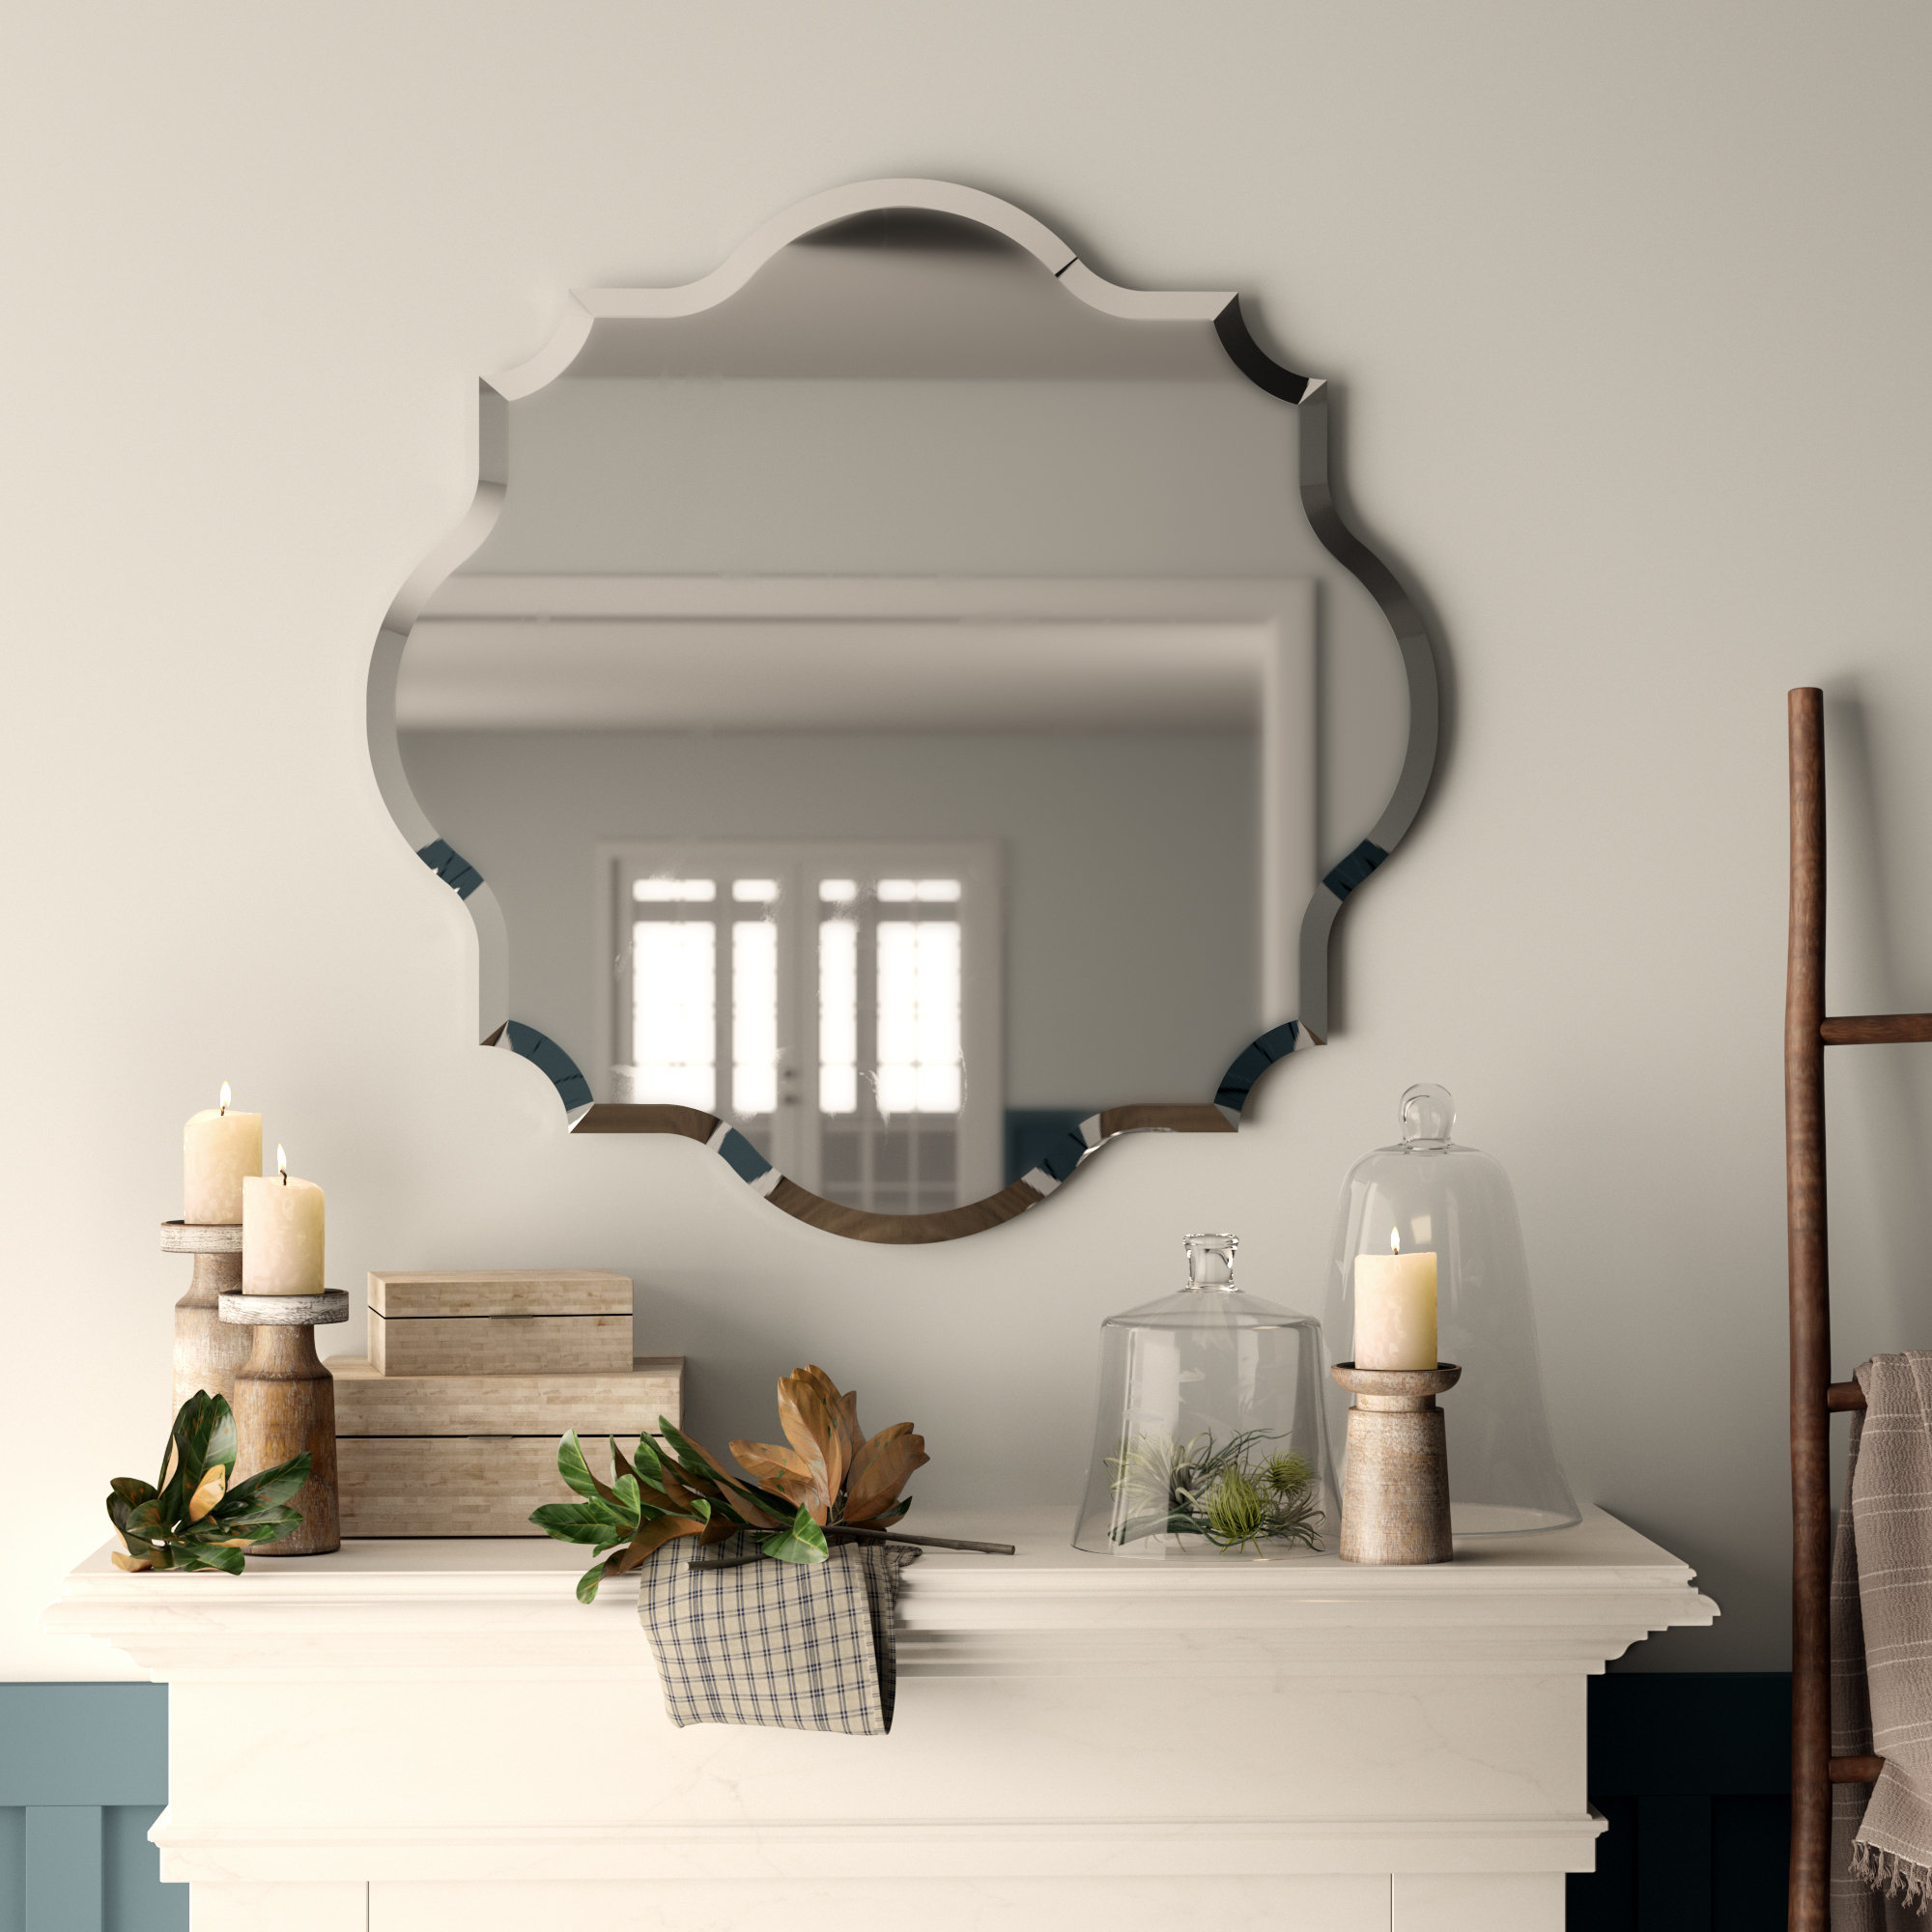 Helder Modern & Contemporary Wall Mirror Pertaining To Guidinha Modern & Contemporary Accent Mirrors (View 23 of 30)